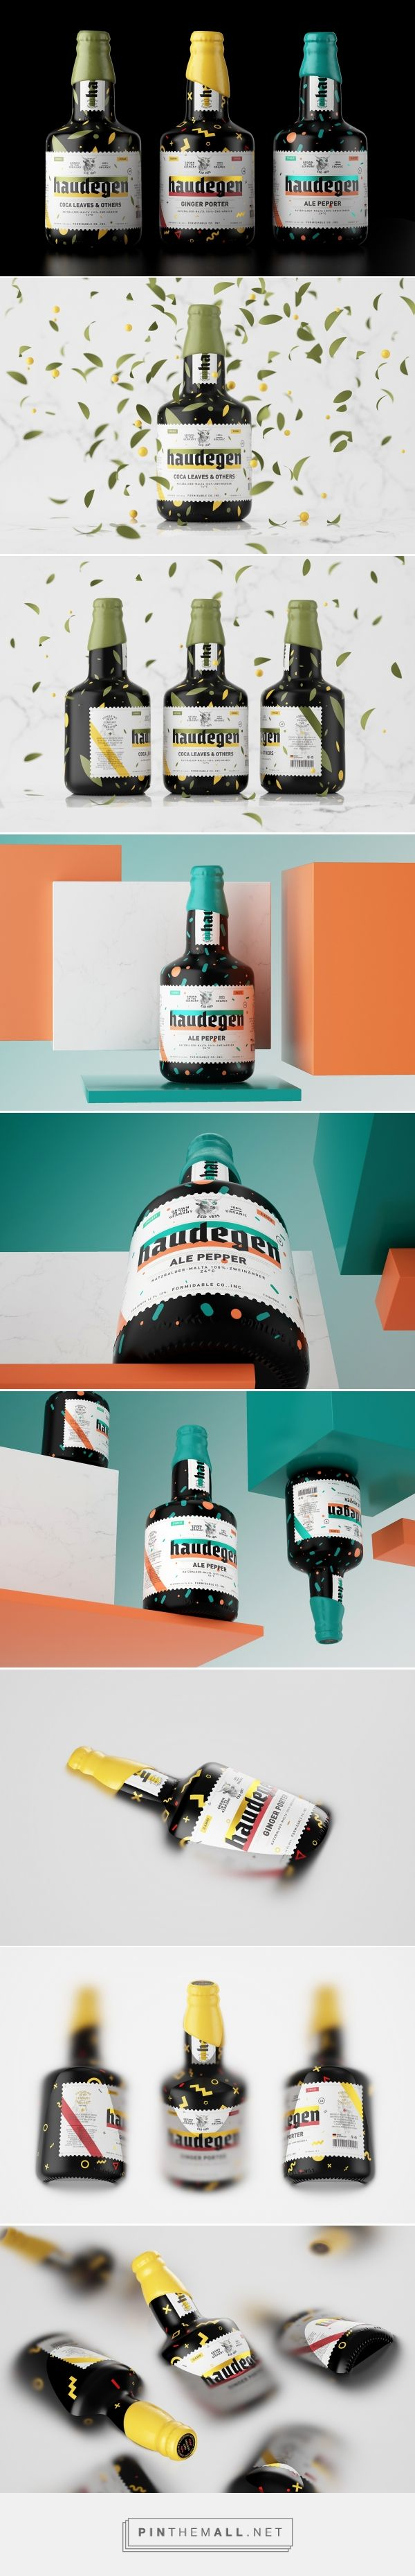 HAUDEGEN BEER Packaging by Constantin Bolimond | Fivestar Branding Agency – Design and Branding Agency & Curated Inspiration Gallery